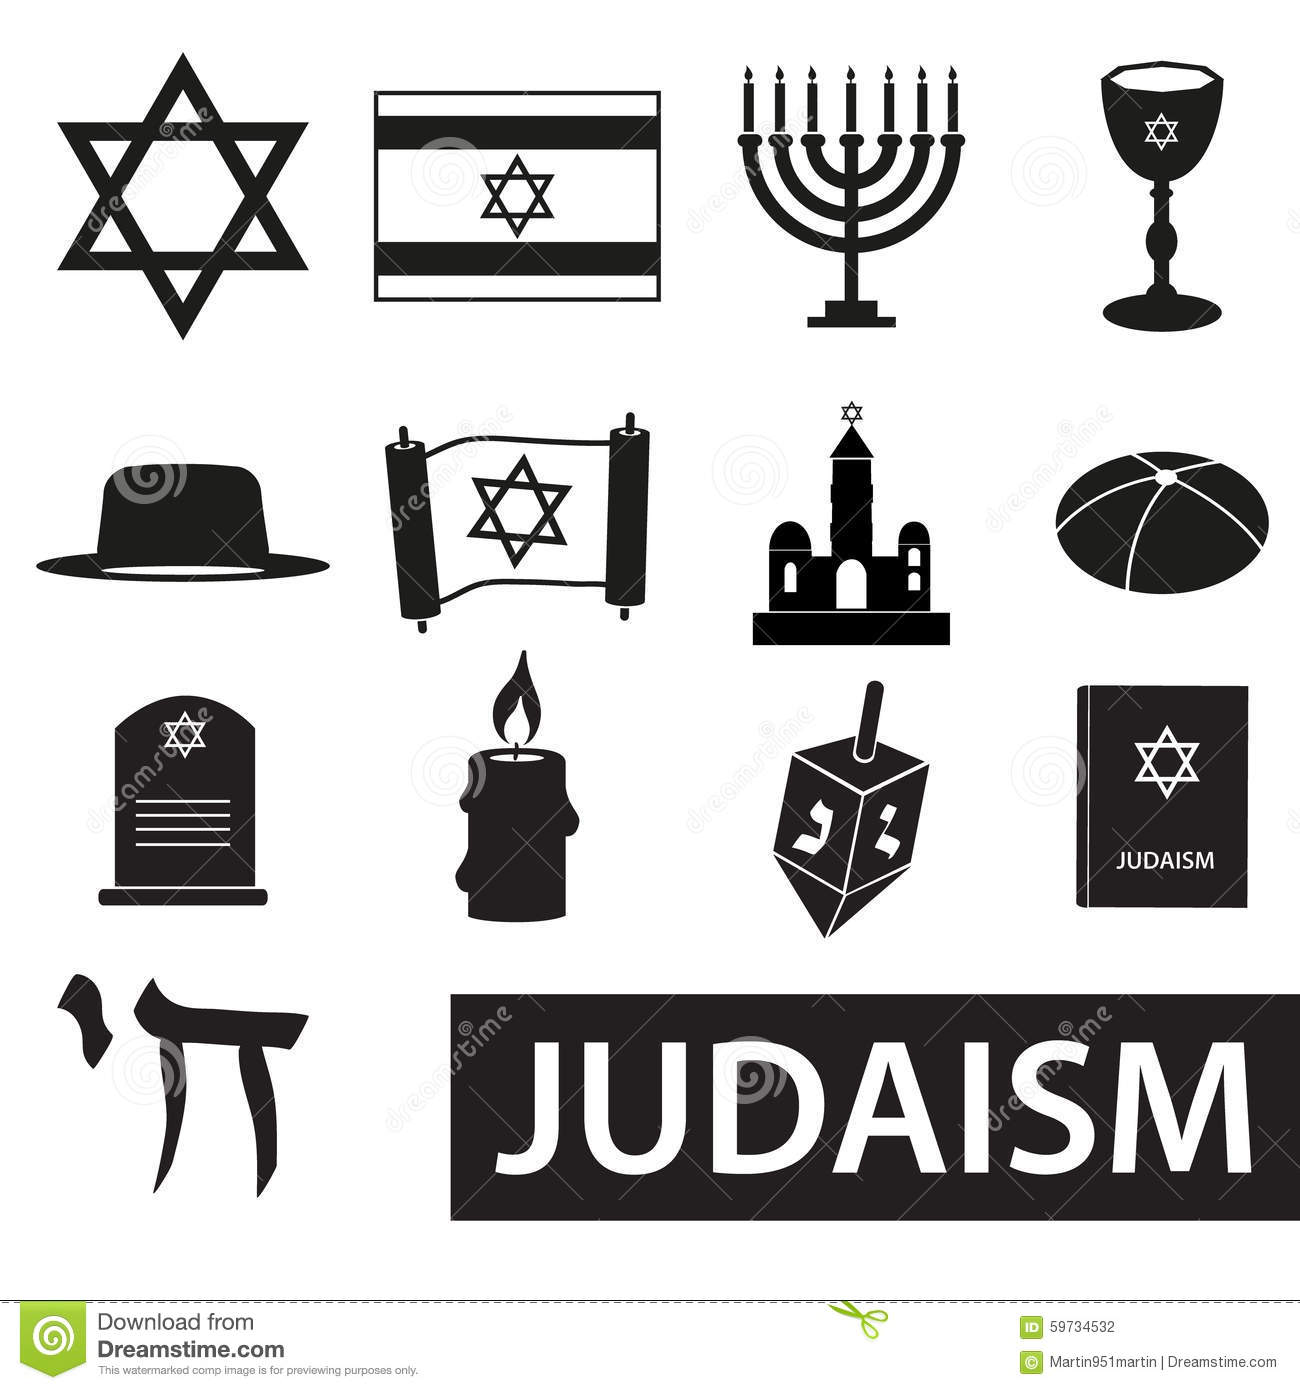 Religious symbols of judaism images symbol and sign ideas judaism religion symbols vector set of icons eps10 stock vector judaism religion symbols vector set of biocorpaavc